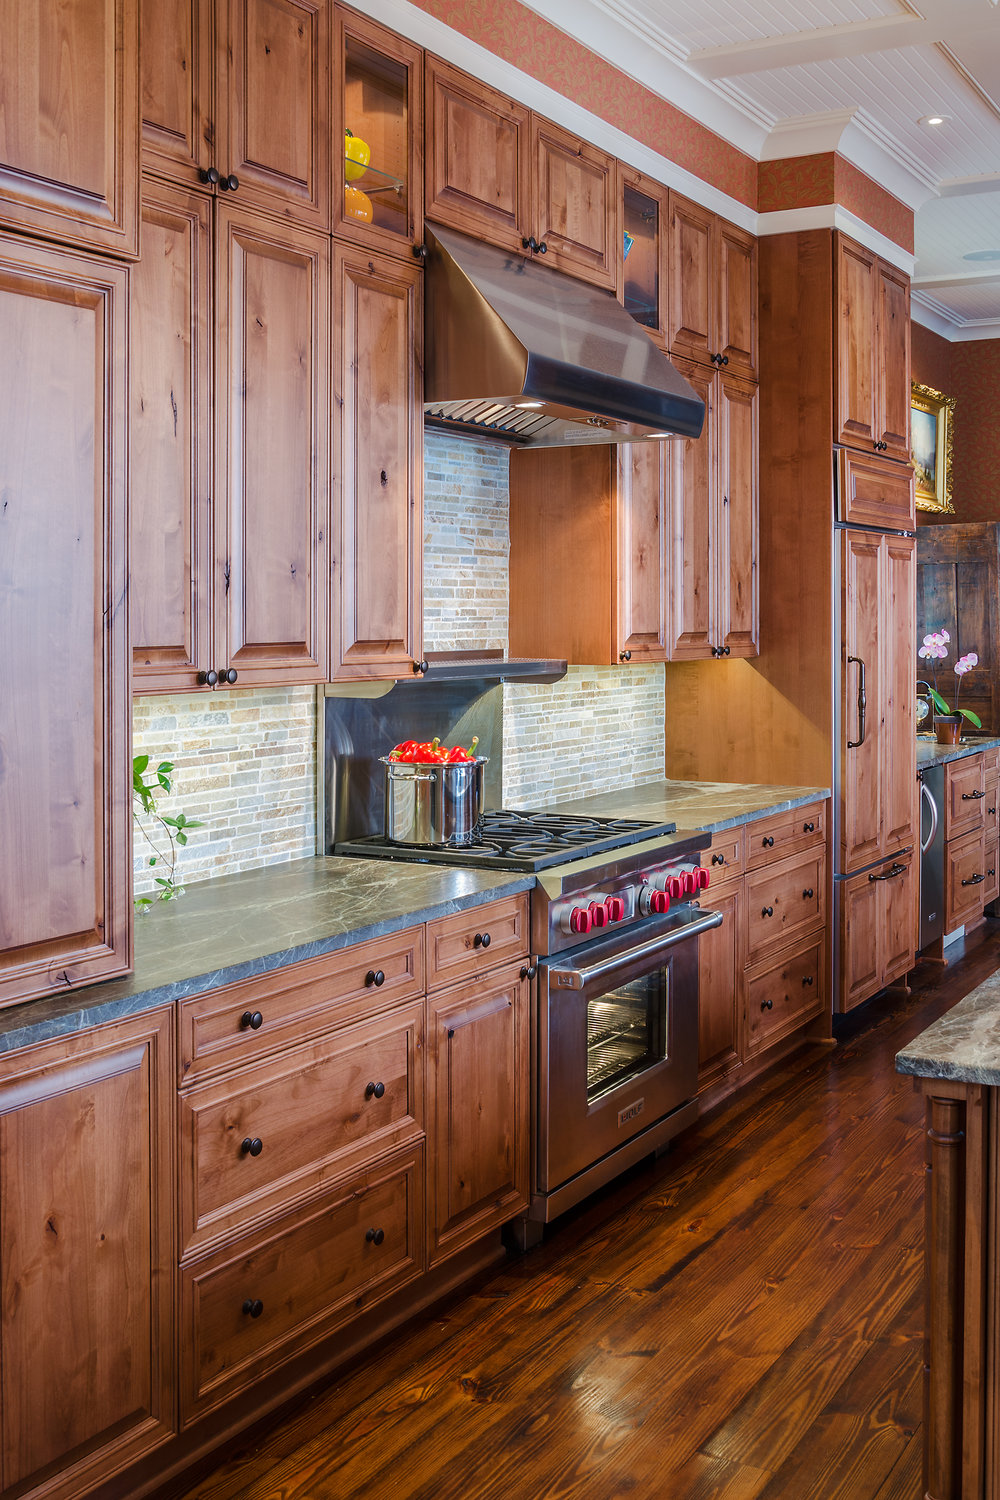 Custom-Kitchens-Wheat-Kitchen-52913-Refrigerator-Stove-wall-2.jpg